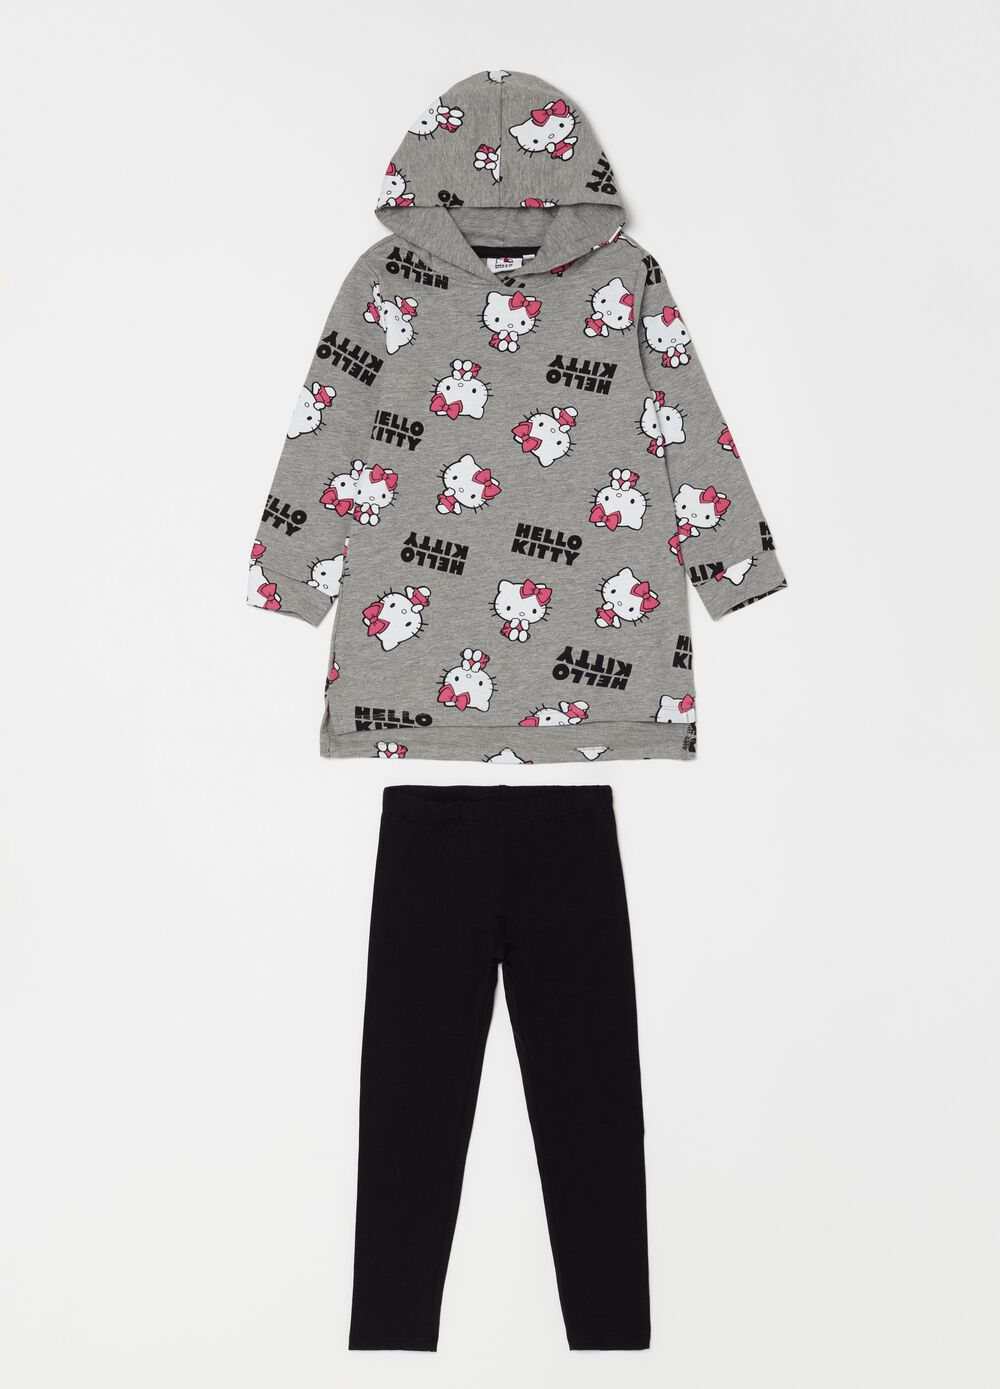 Hello Kitty jogging set with sweatshirt and trousers